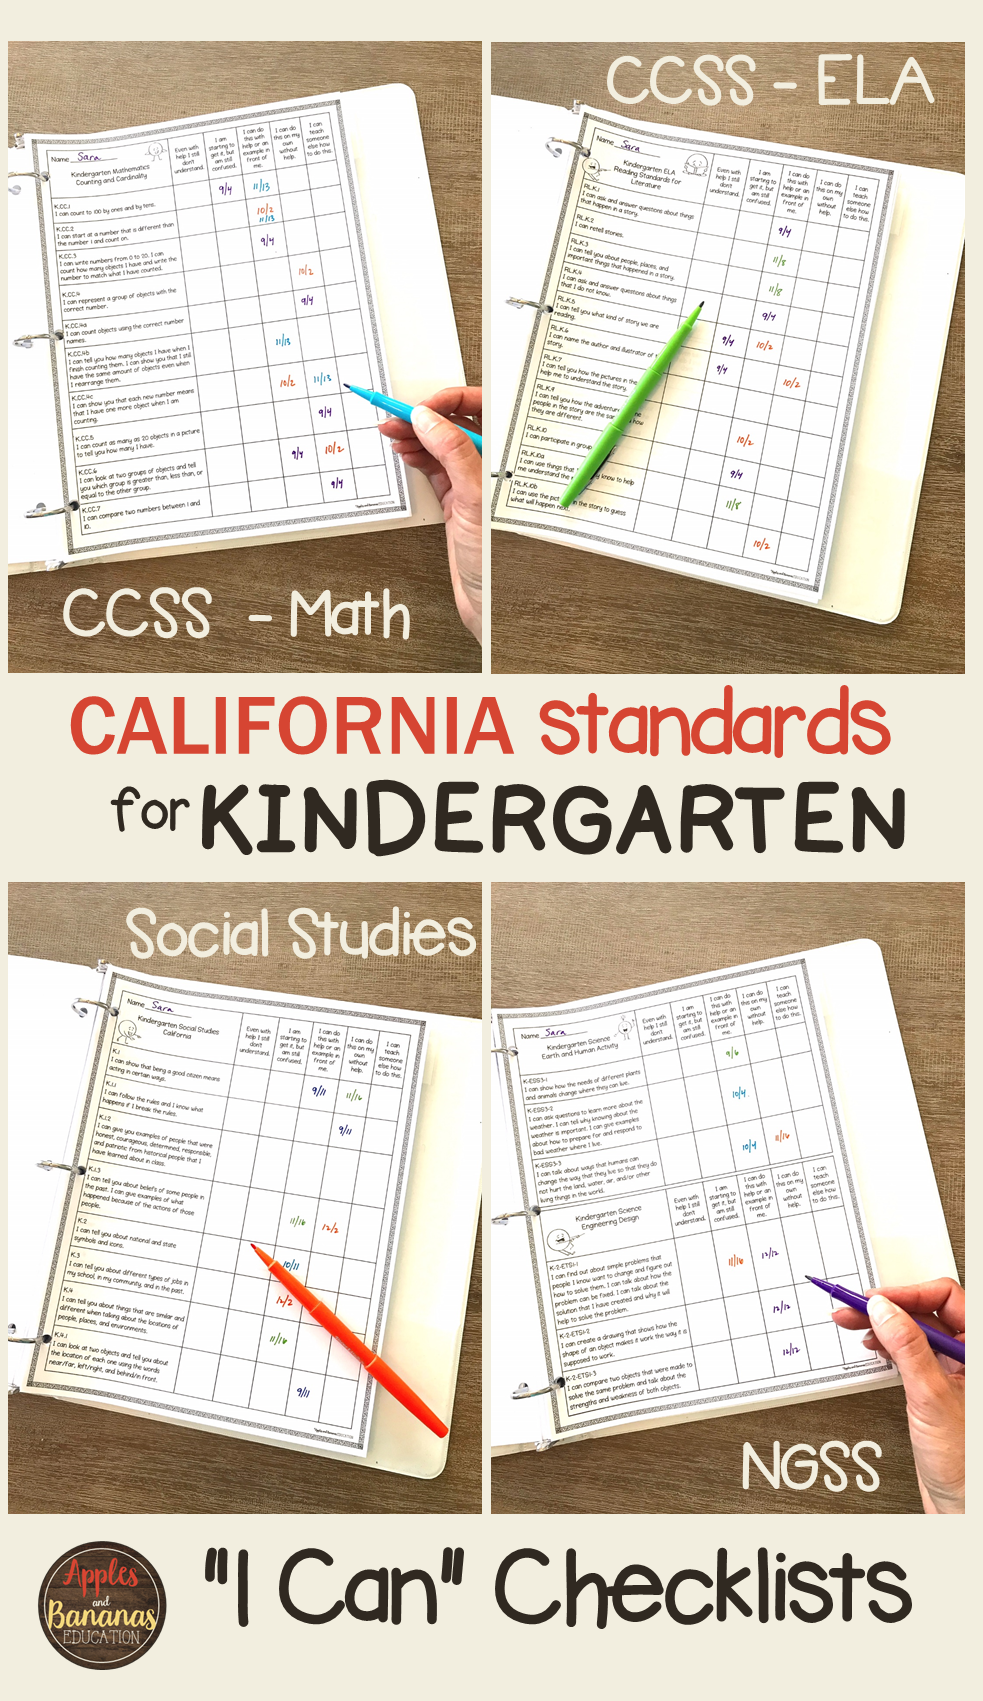 Kindergarten Standards Checklists for All Subjects - 'I Can